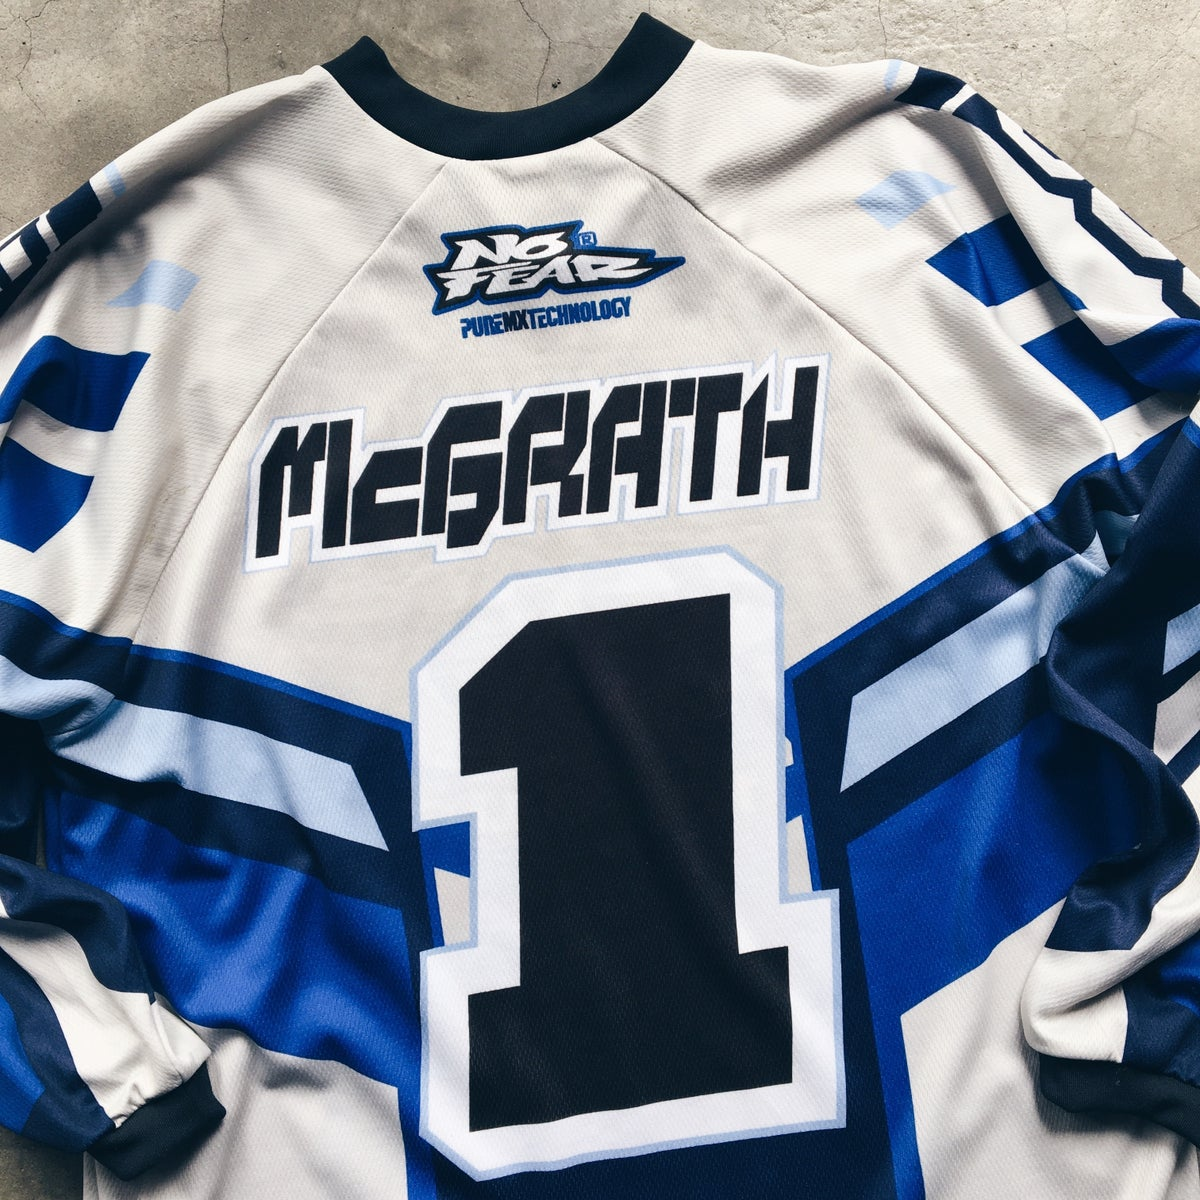 Image of Original Vintage No Fear Jeremy McGrath Racing Jersey.